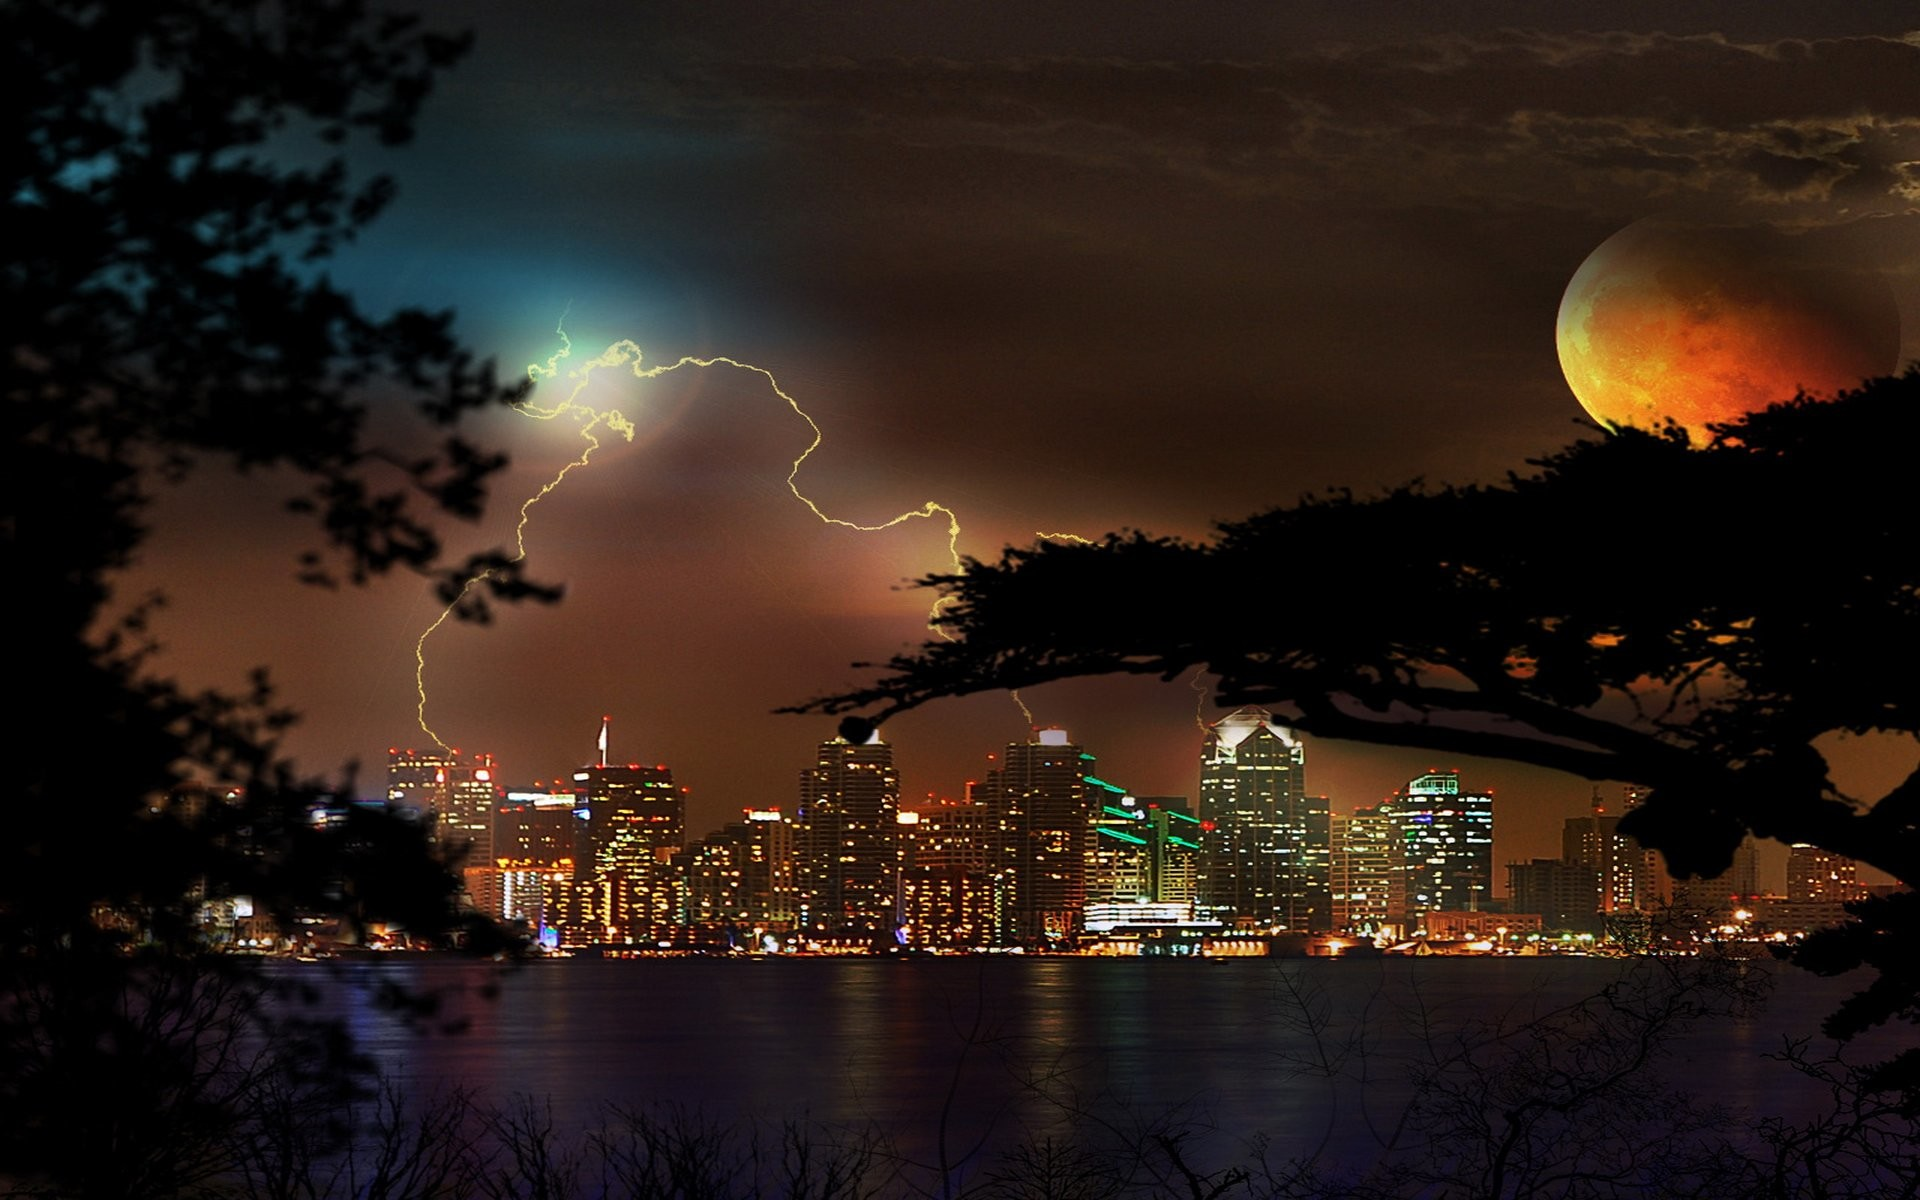 Android tablet hd wallpapers 61 images - Night light city wallpaper ...